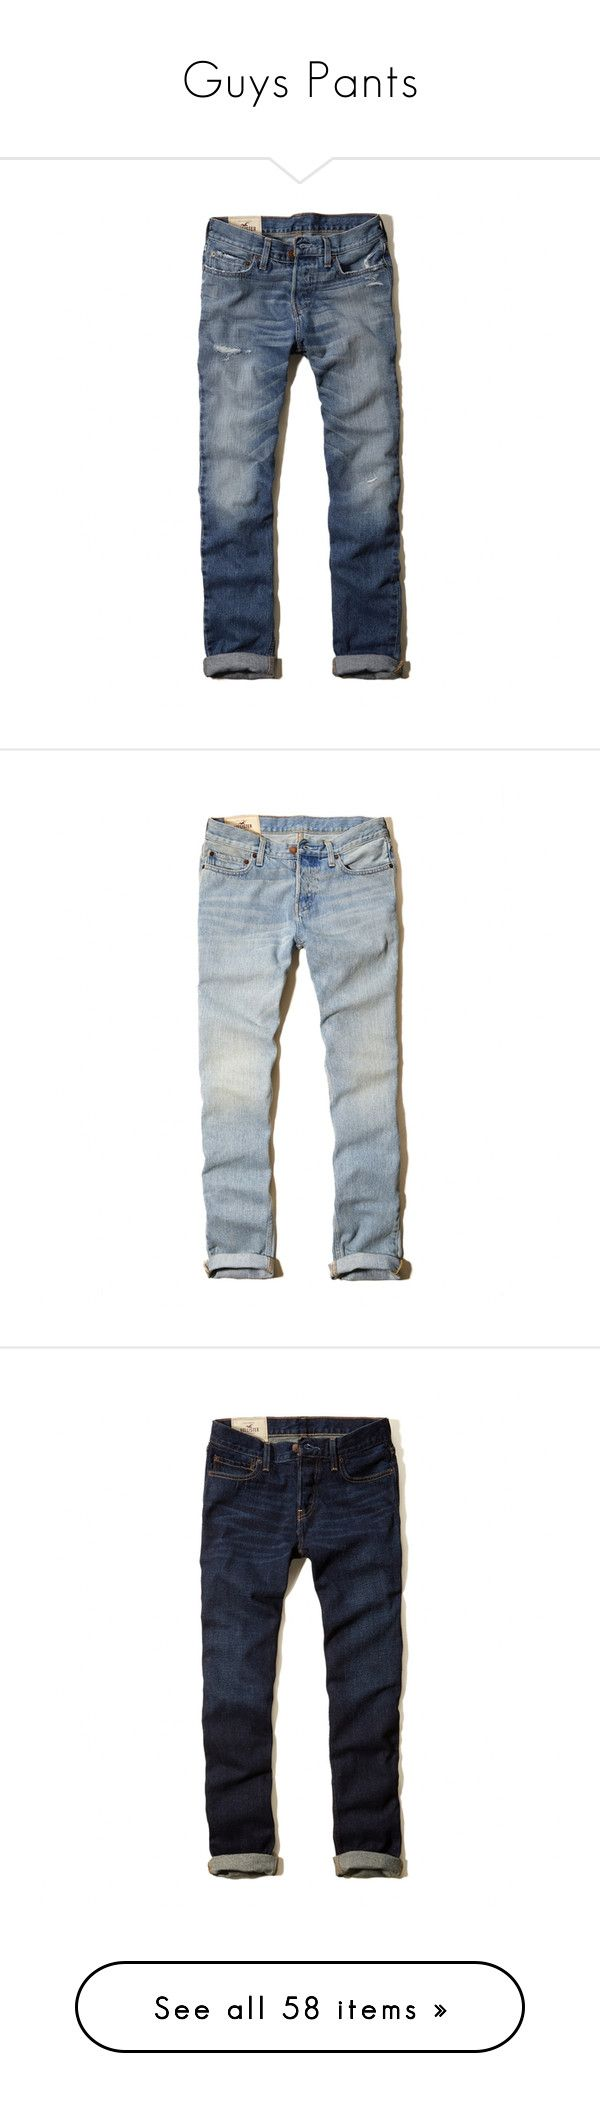 """""""Guys Pants"""" by refplayitback on Polyvore featuring men's fashion, men's clothing, men's jeans, mens cuffed jeans, mens dark jeans, mens skinny jeans, mens faded jeans, mens skinny fit jeans, men's pants and men's dress pants"""